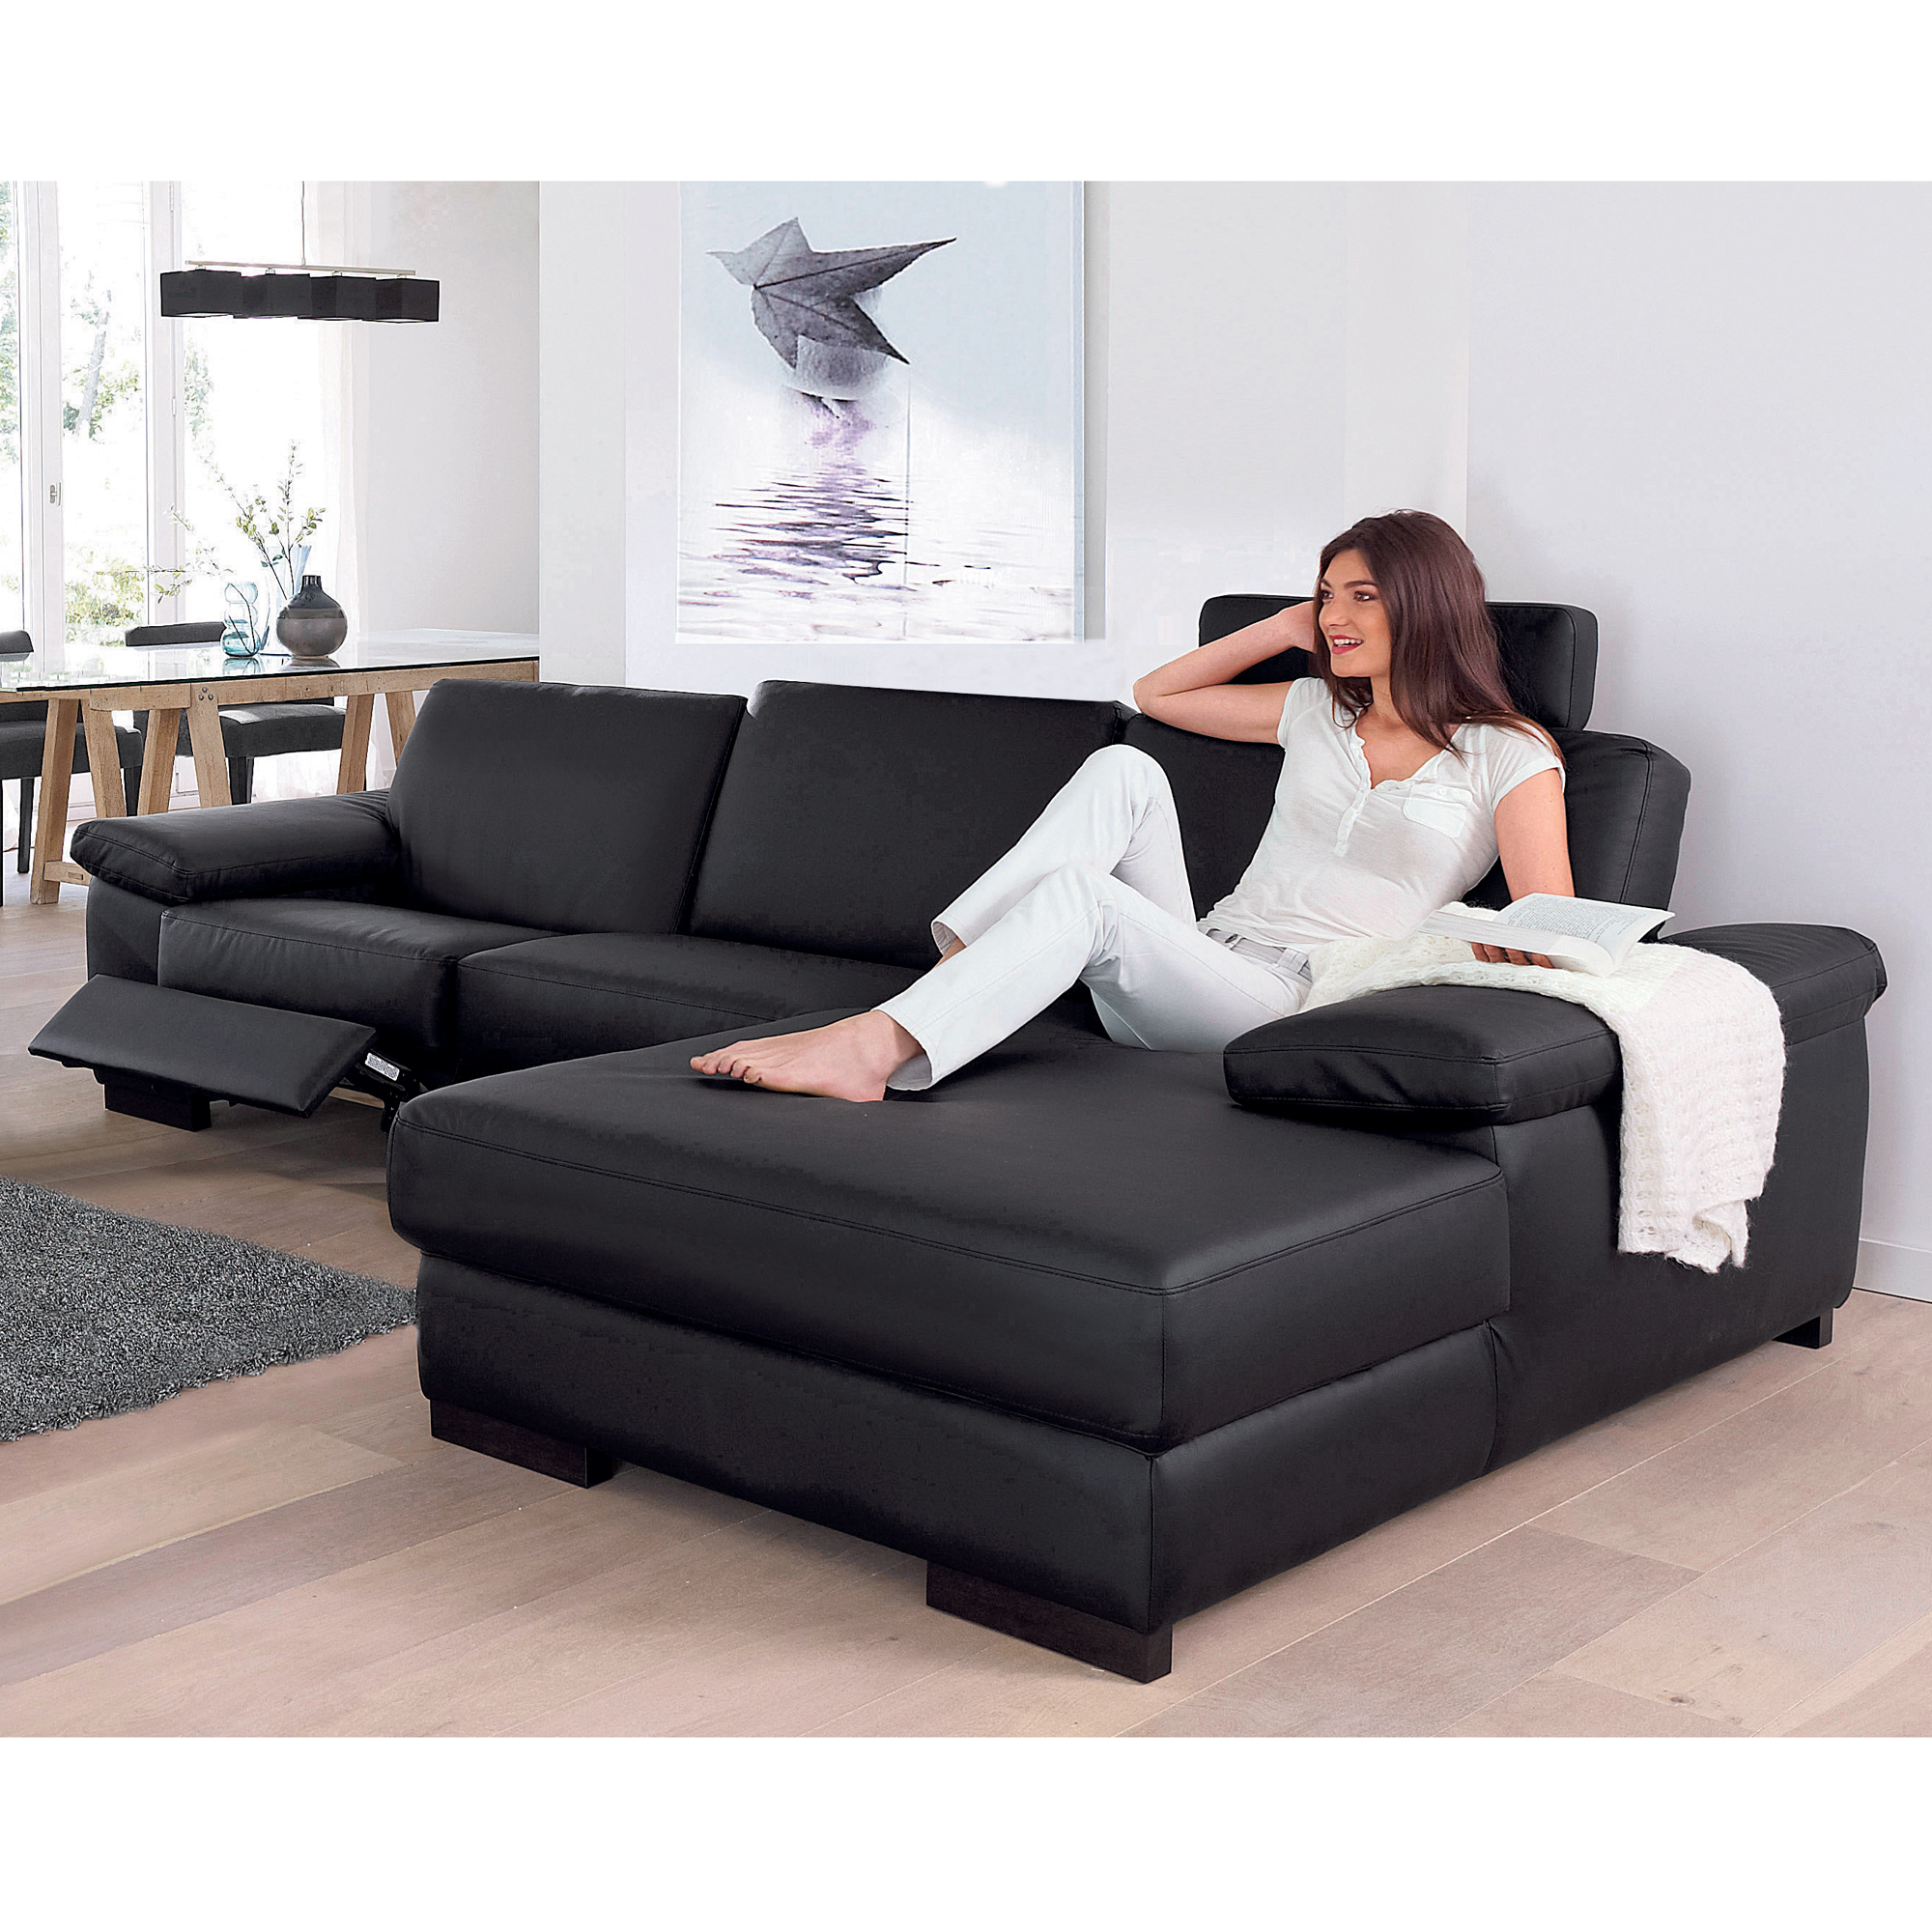 canap d 39 angle droite 1 place relaxation lectrique hamilton rev tement noir anniversaire 40. Black Bedroom Furniture Sets. Home Design Ideas